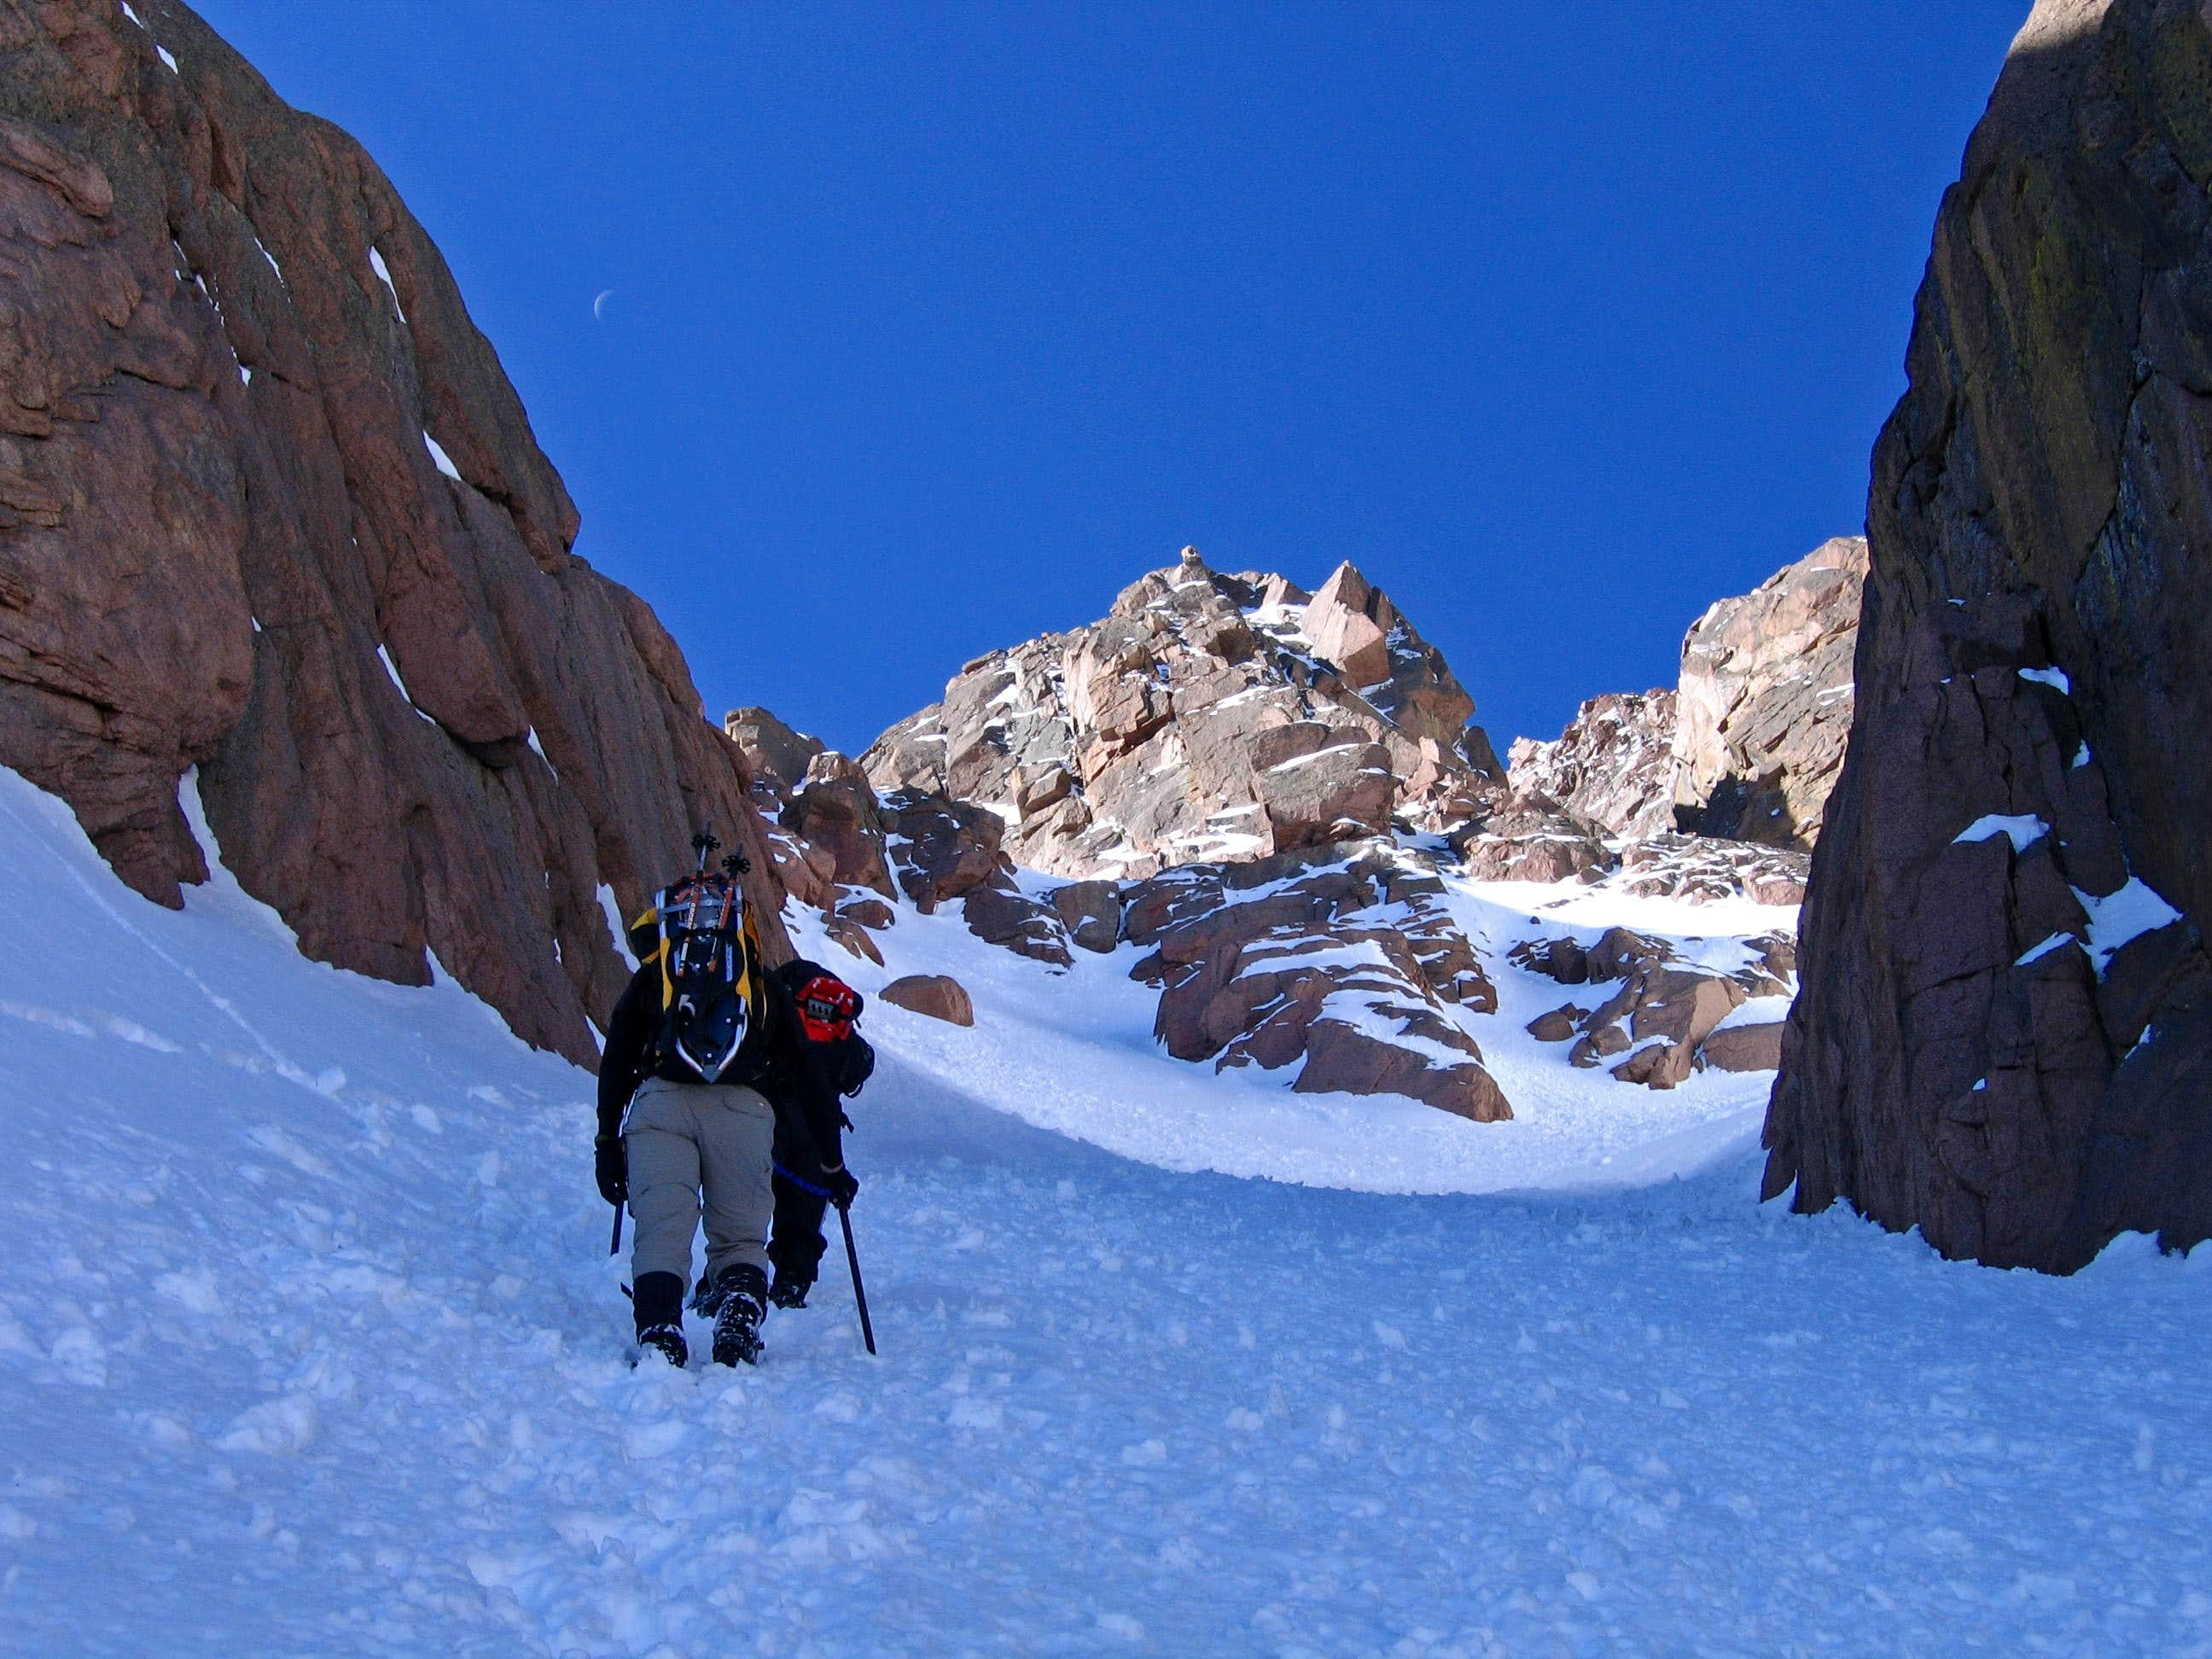 Pikes Peak Y Couloir: The Sequel